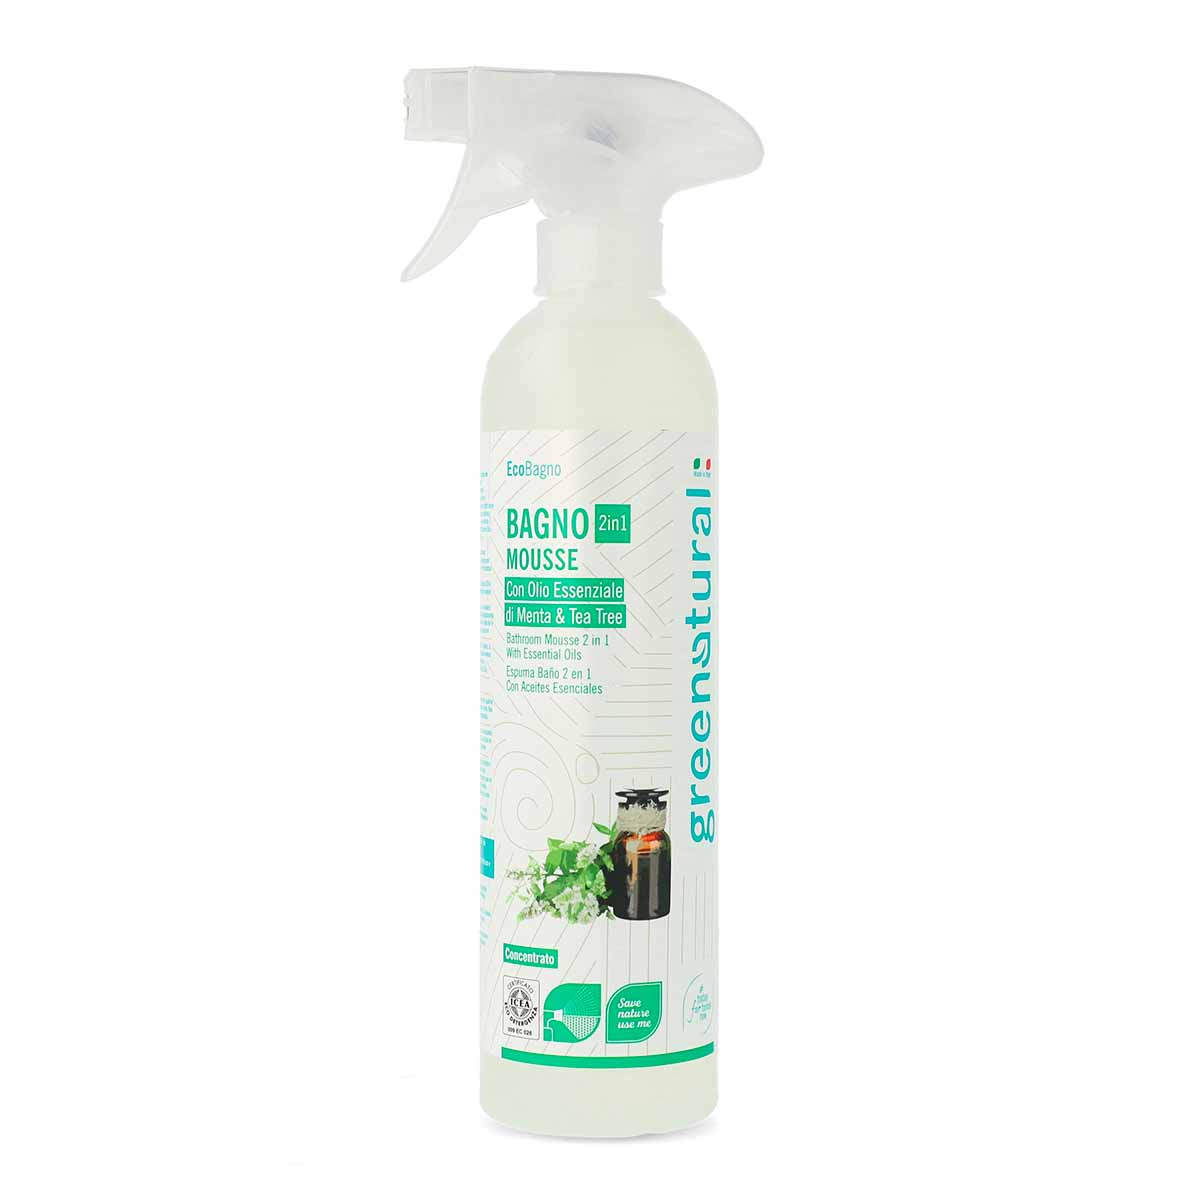 Greenatural – Bagno 2in1 Mousse